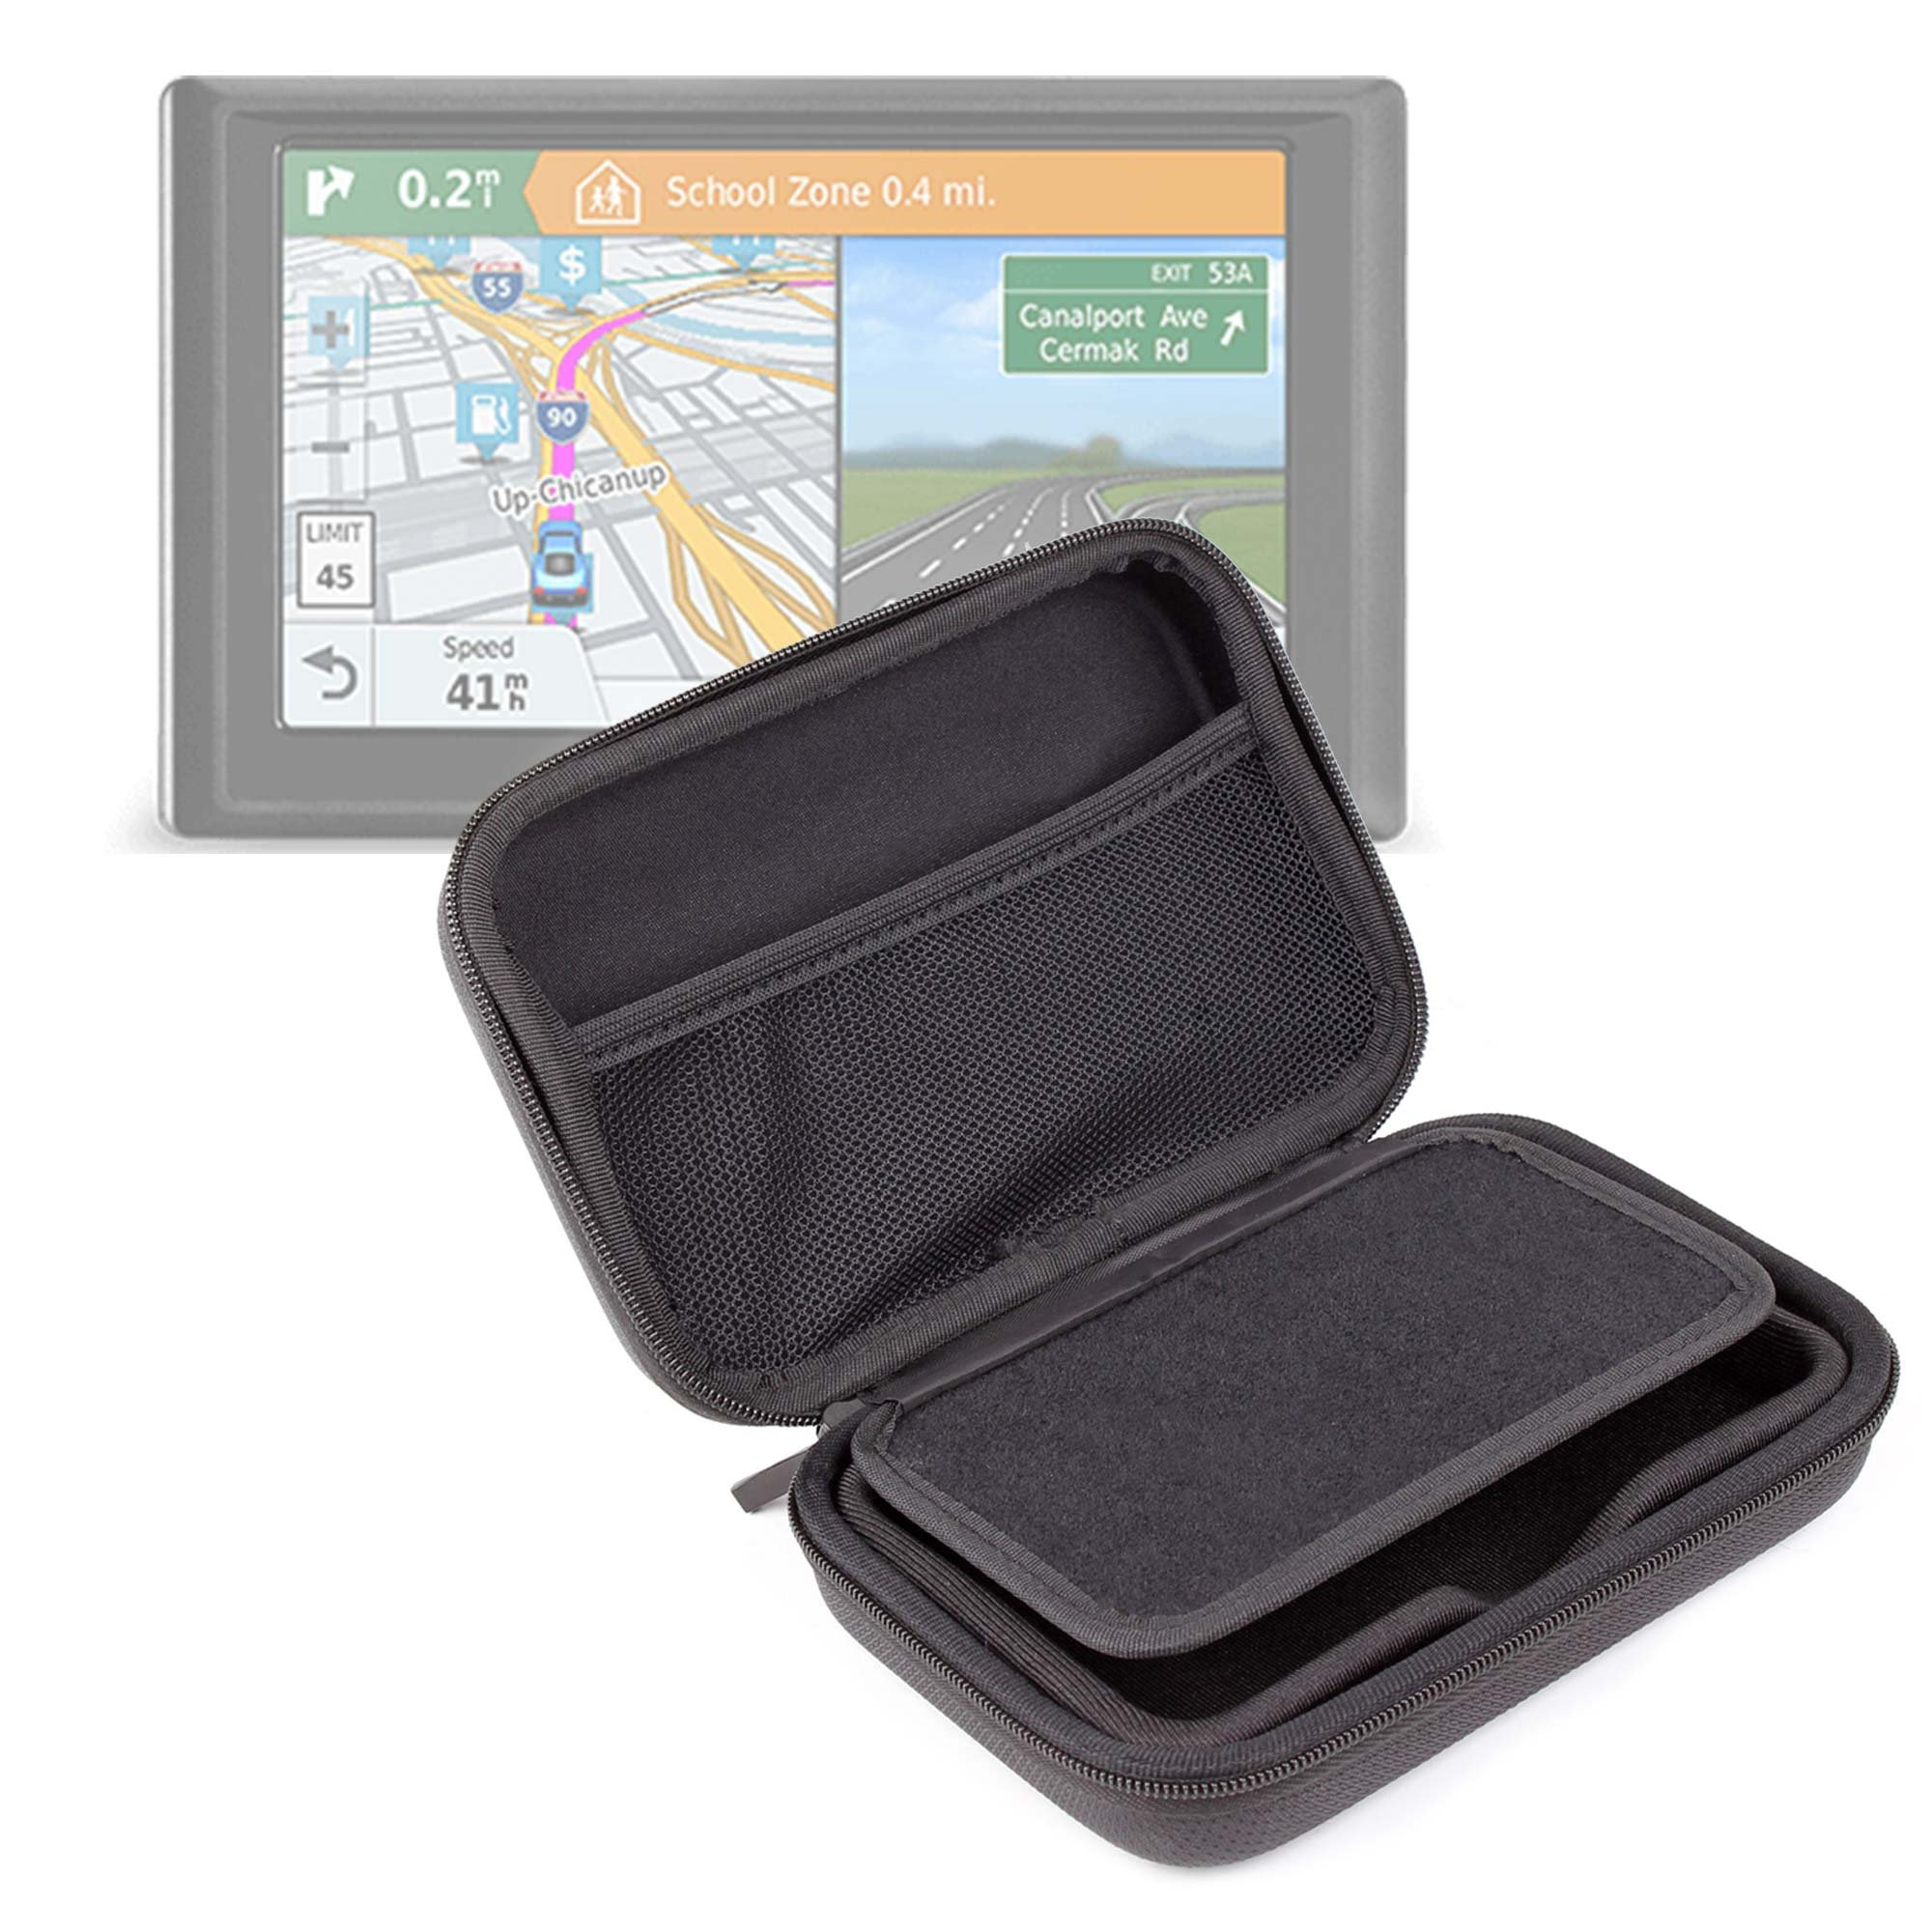 DURAGADGET Exclusive 5-inch Hard Shell EVA Case in Matte Black for the NEW Garmin Drive 50 / 50LM / 50LMT Satnavs